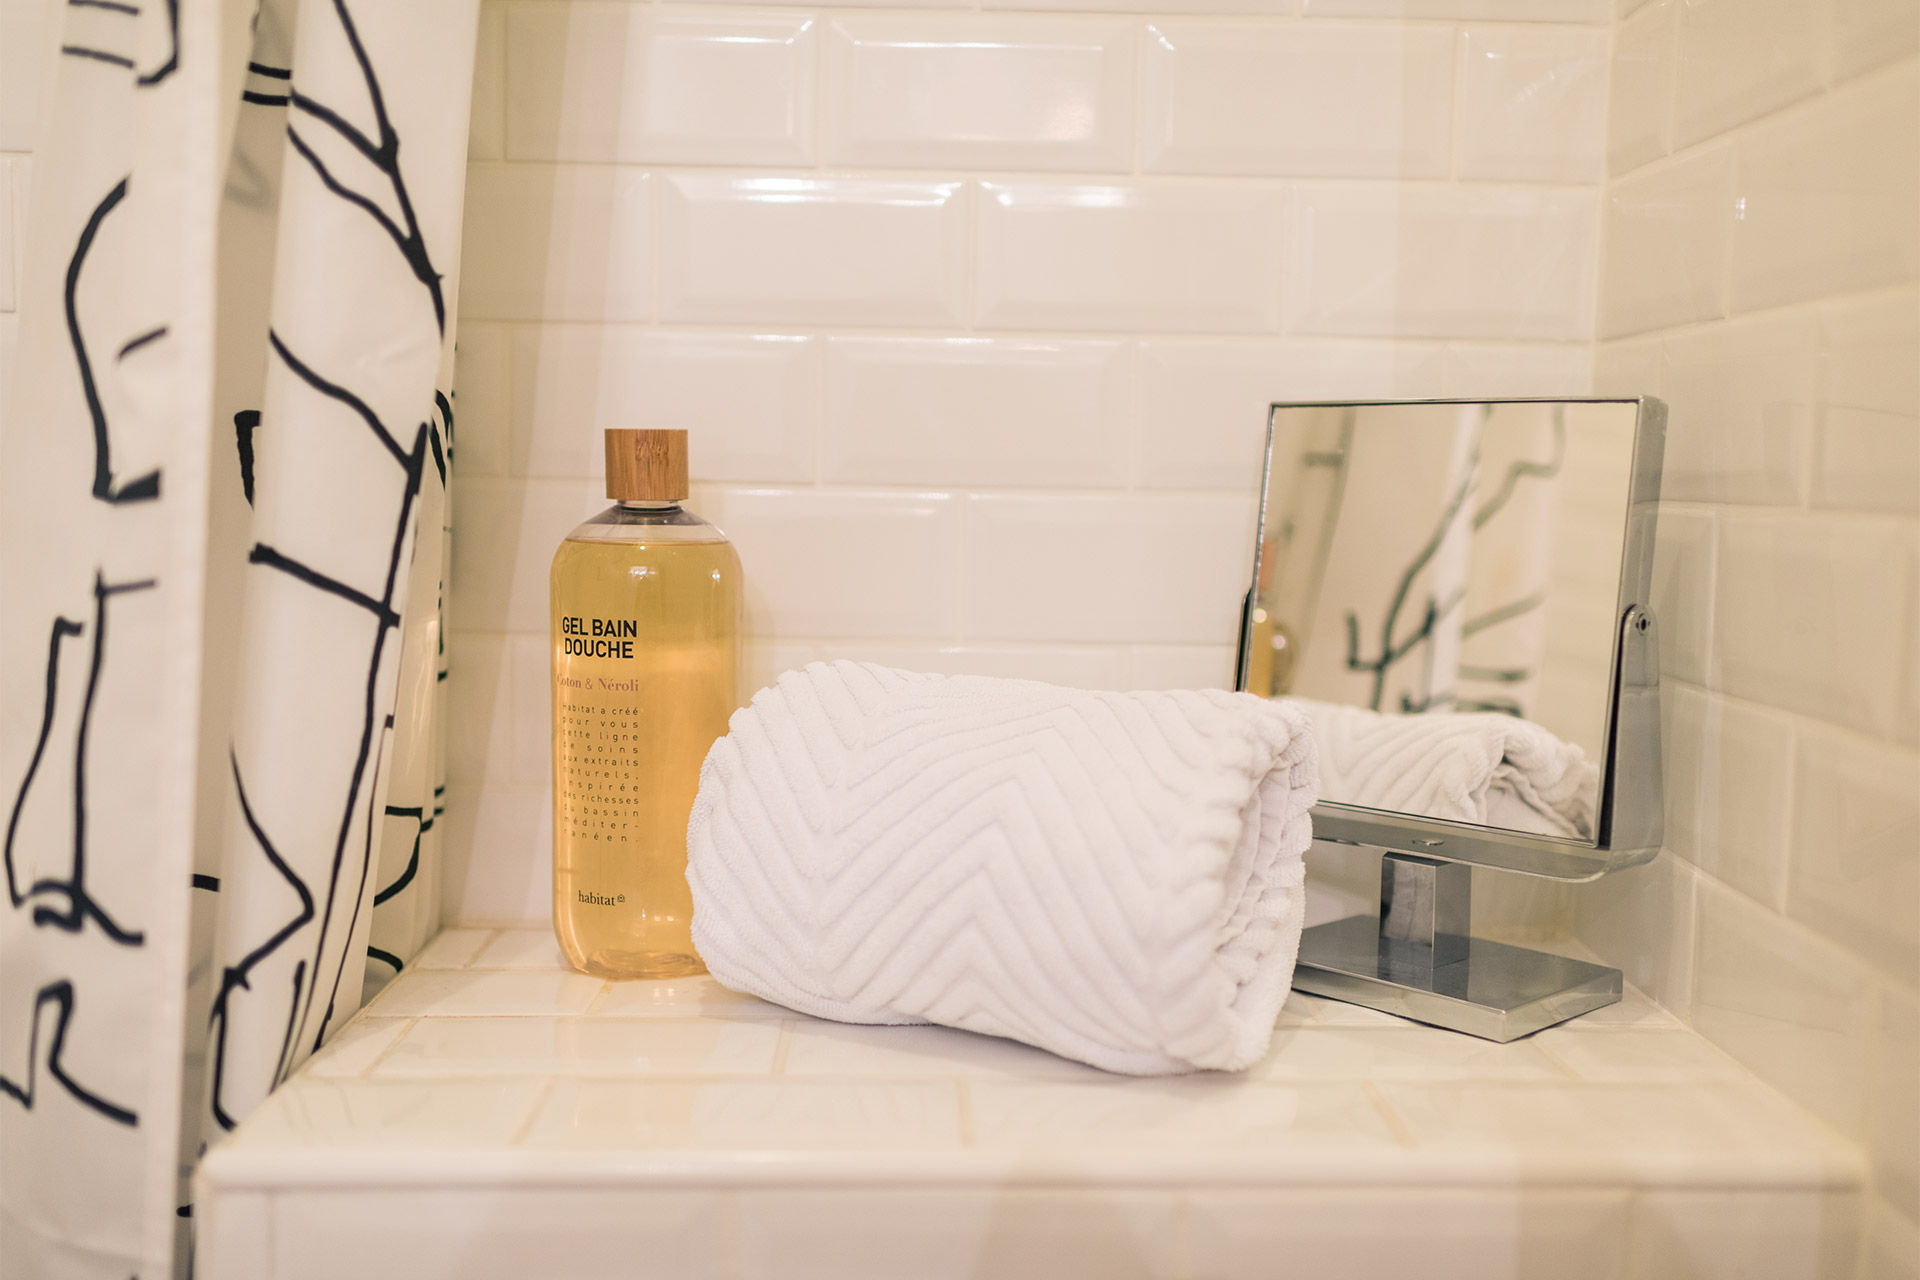 Fluffy towels, soaps and all the luxuries of home in the Maubert vacation rental offered by Paris Perfect